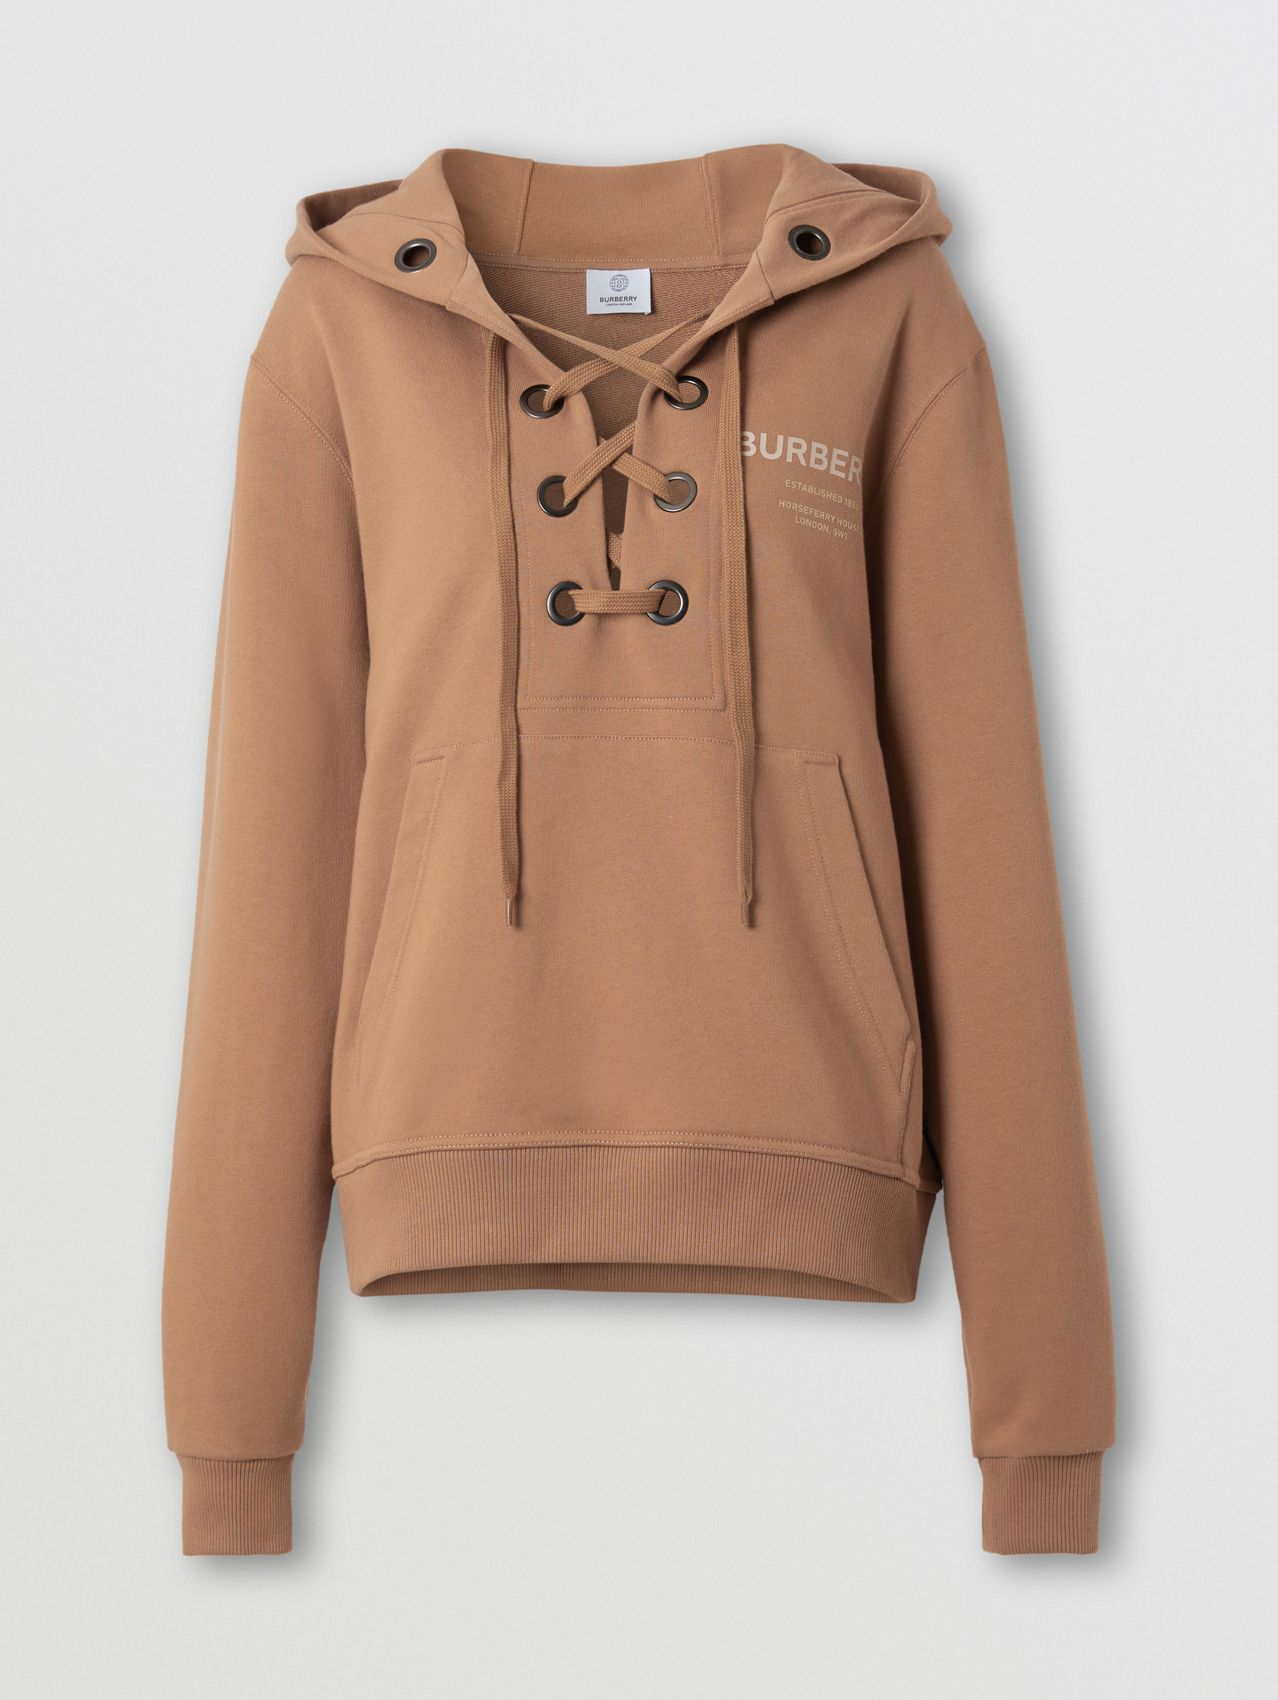 Lace-up Horseferry Print Cotton Oversized Hoodie in Camel